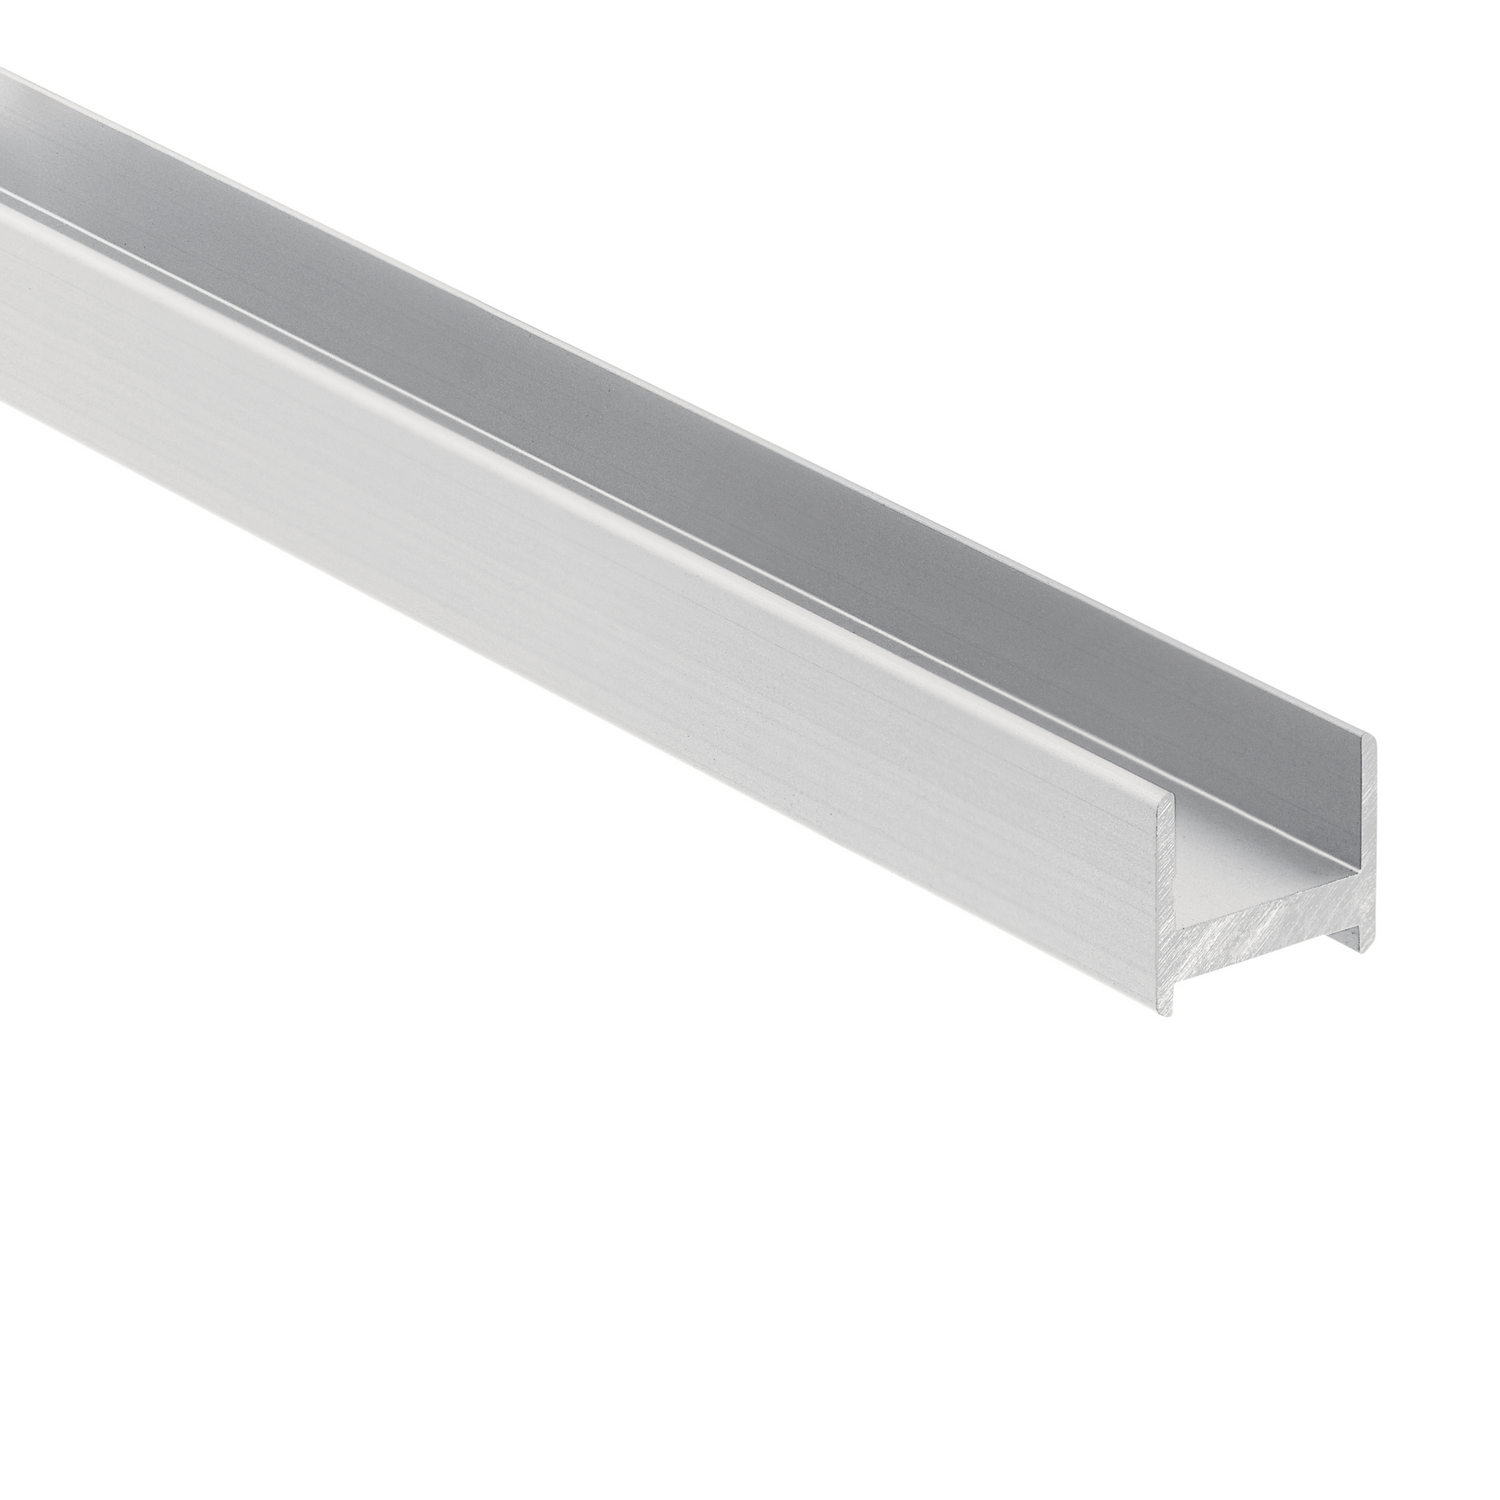 Adjustable Beam LED Insert from the ILS TE Series collection by Kichler 1TEA1DWADJ8SIL